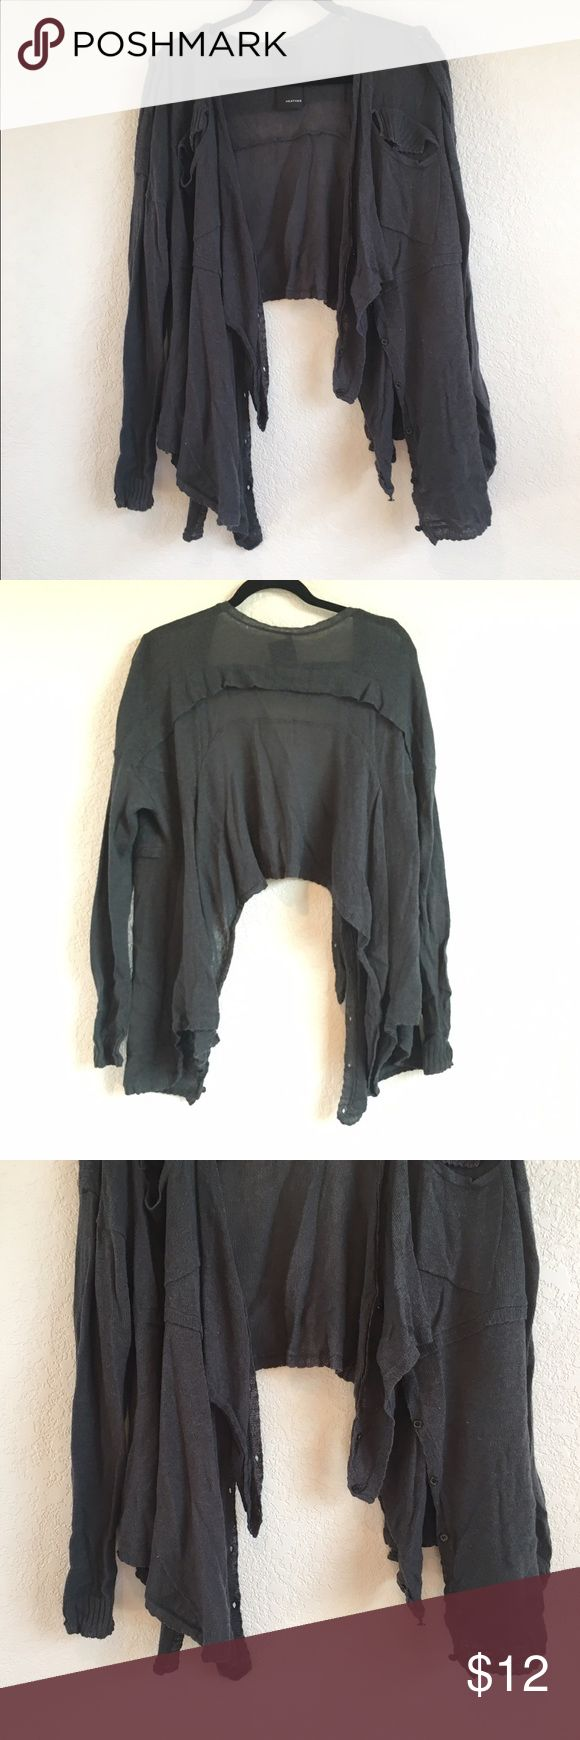 Dark Olive Green Cardigan Unique Cardigan! Dark olive green color with a jagged hem and button up scars like detail! Back comes up higher than front hem but super cute and Free People-esque! Great condition! Sweaters Cardigans